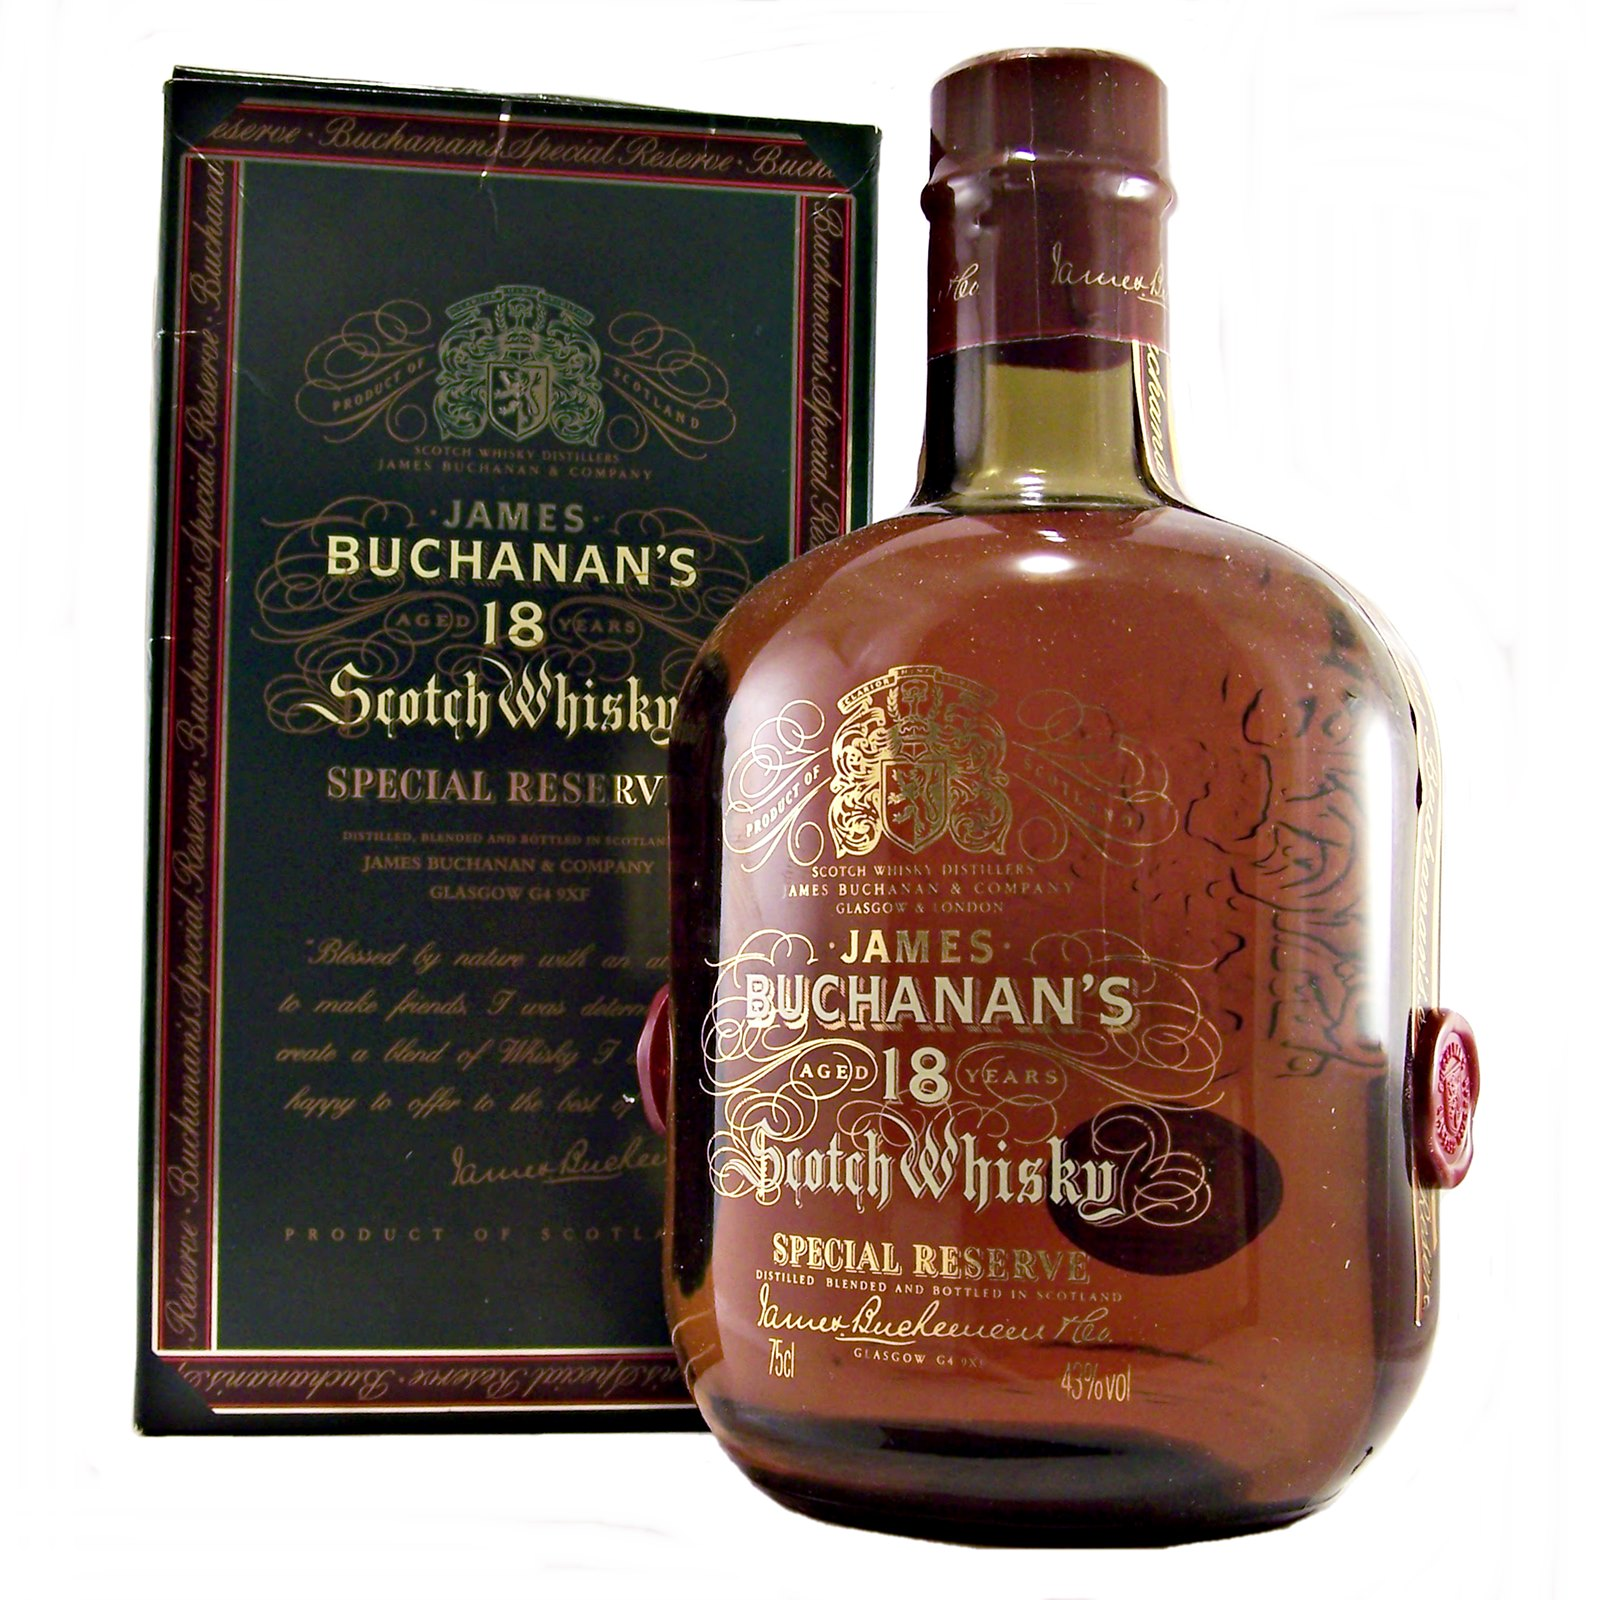 Buchanan Drink: Buchanan's 18 Year Old Scotch Whisky Special Reserve